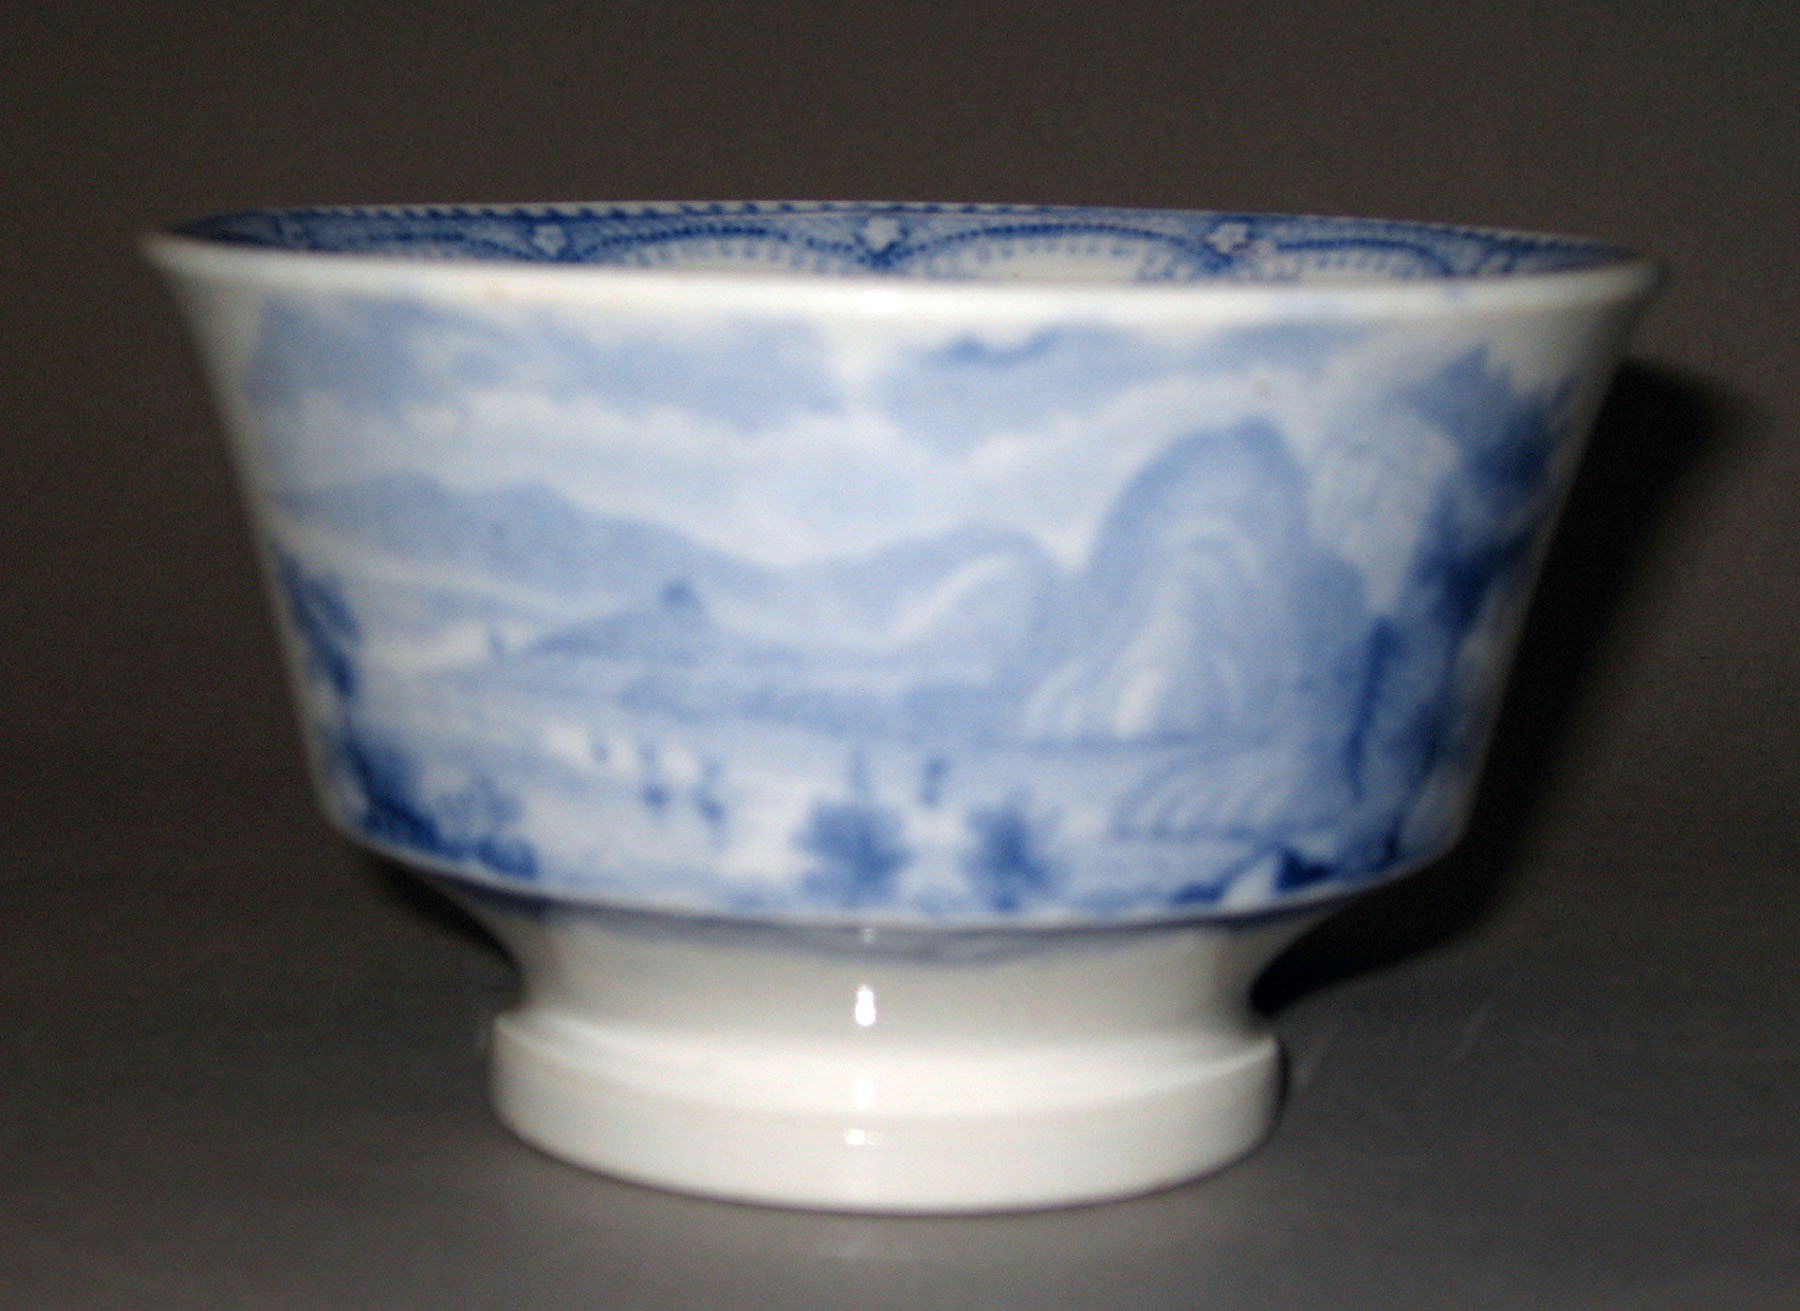 1965.2915.005 Ridgway earthenware tea bowl